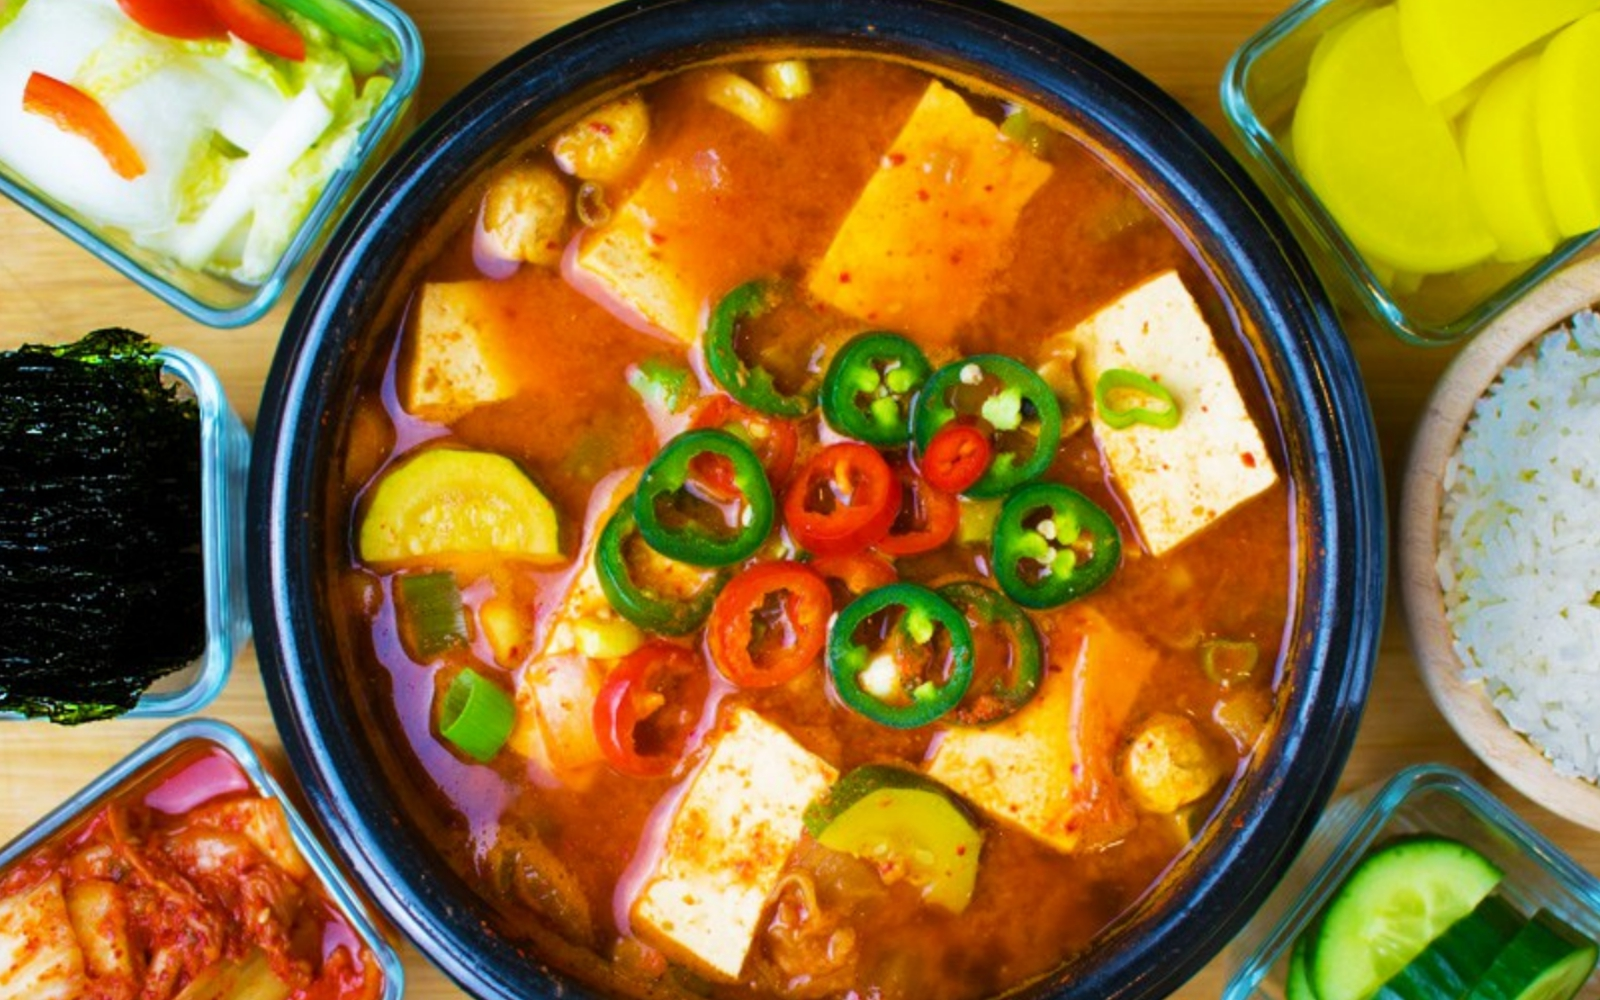 Vegan Korean Soybean Paste Stew